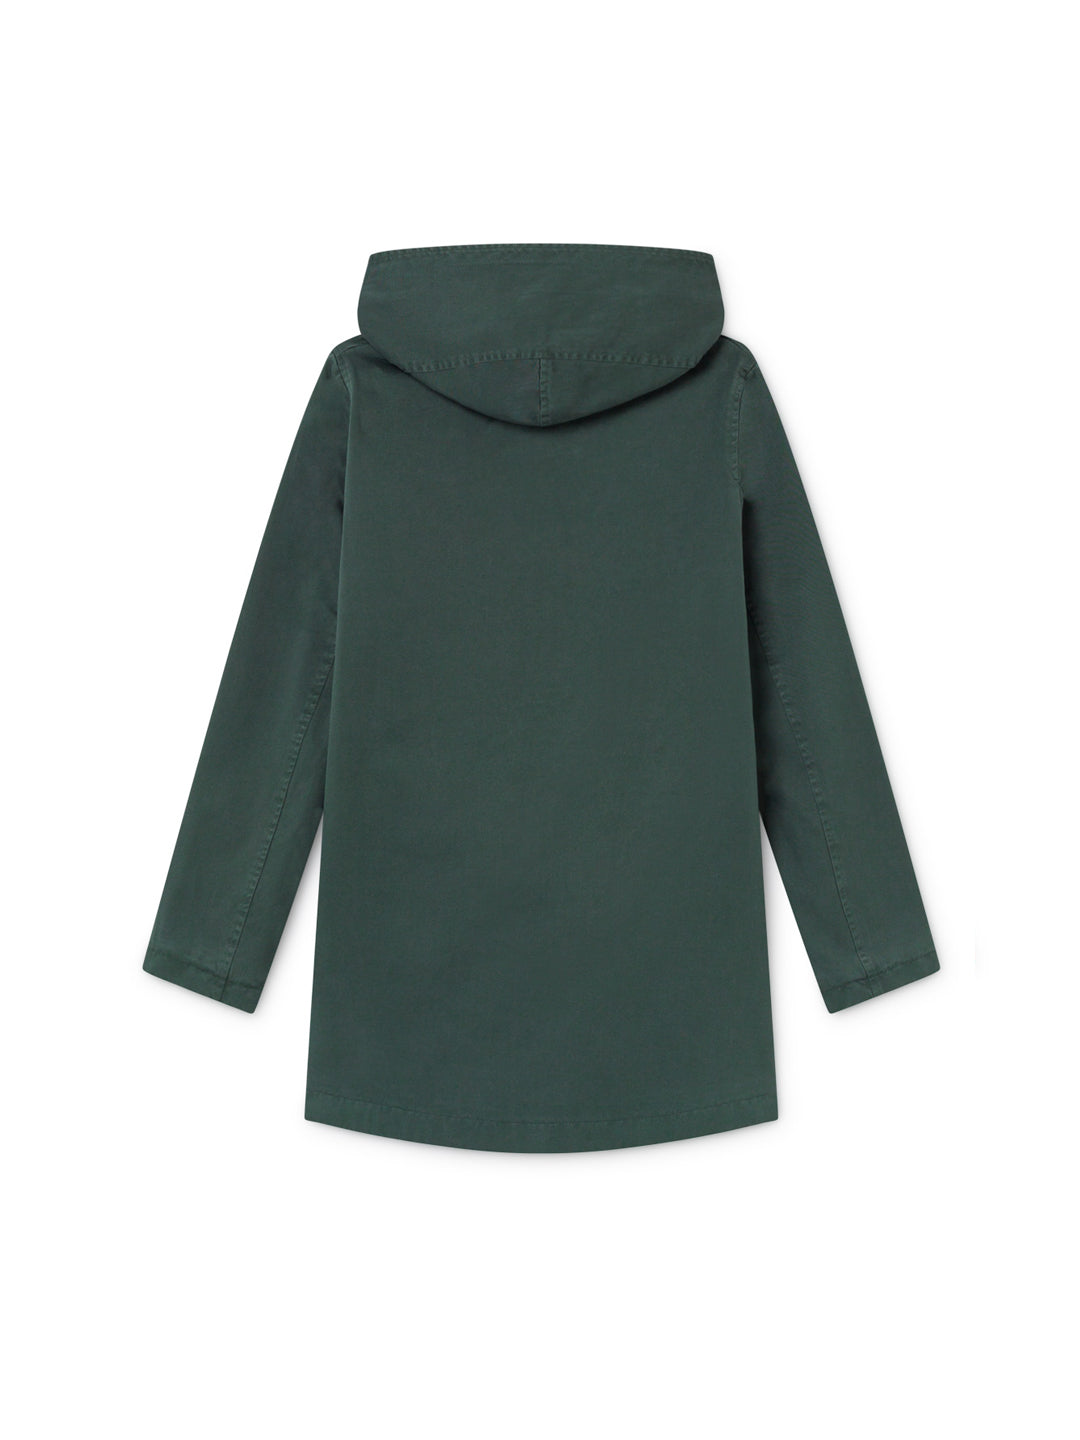 TWOTHIRDS Womens Jacket: Skorpio - Dark Green back